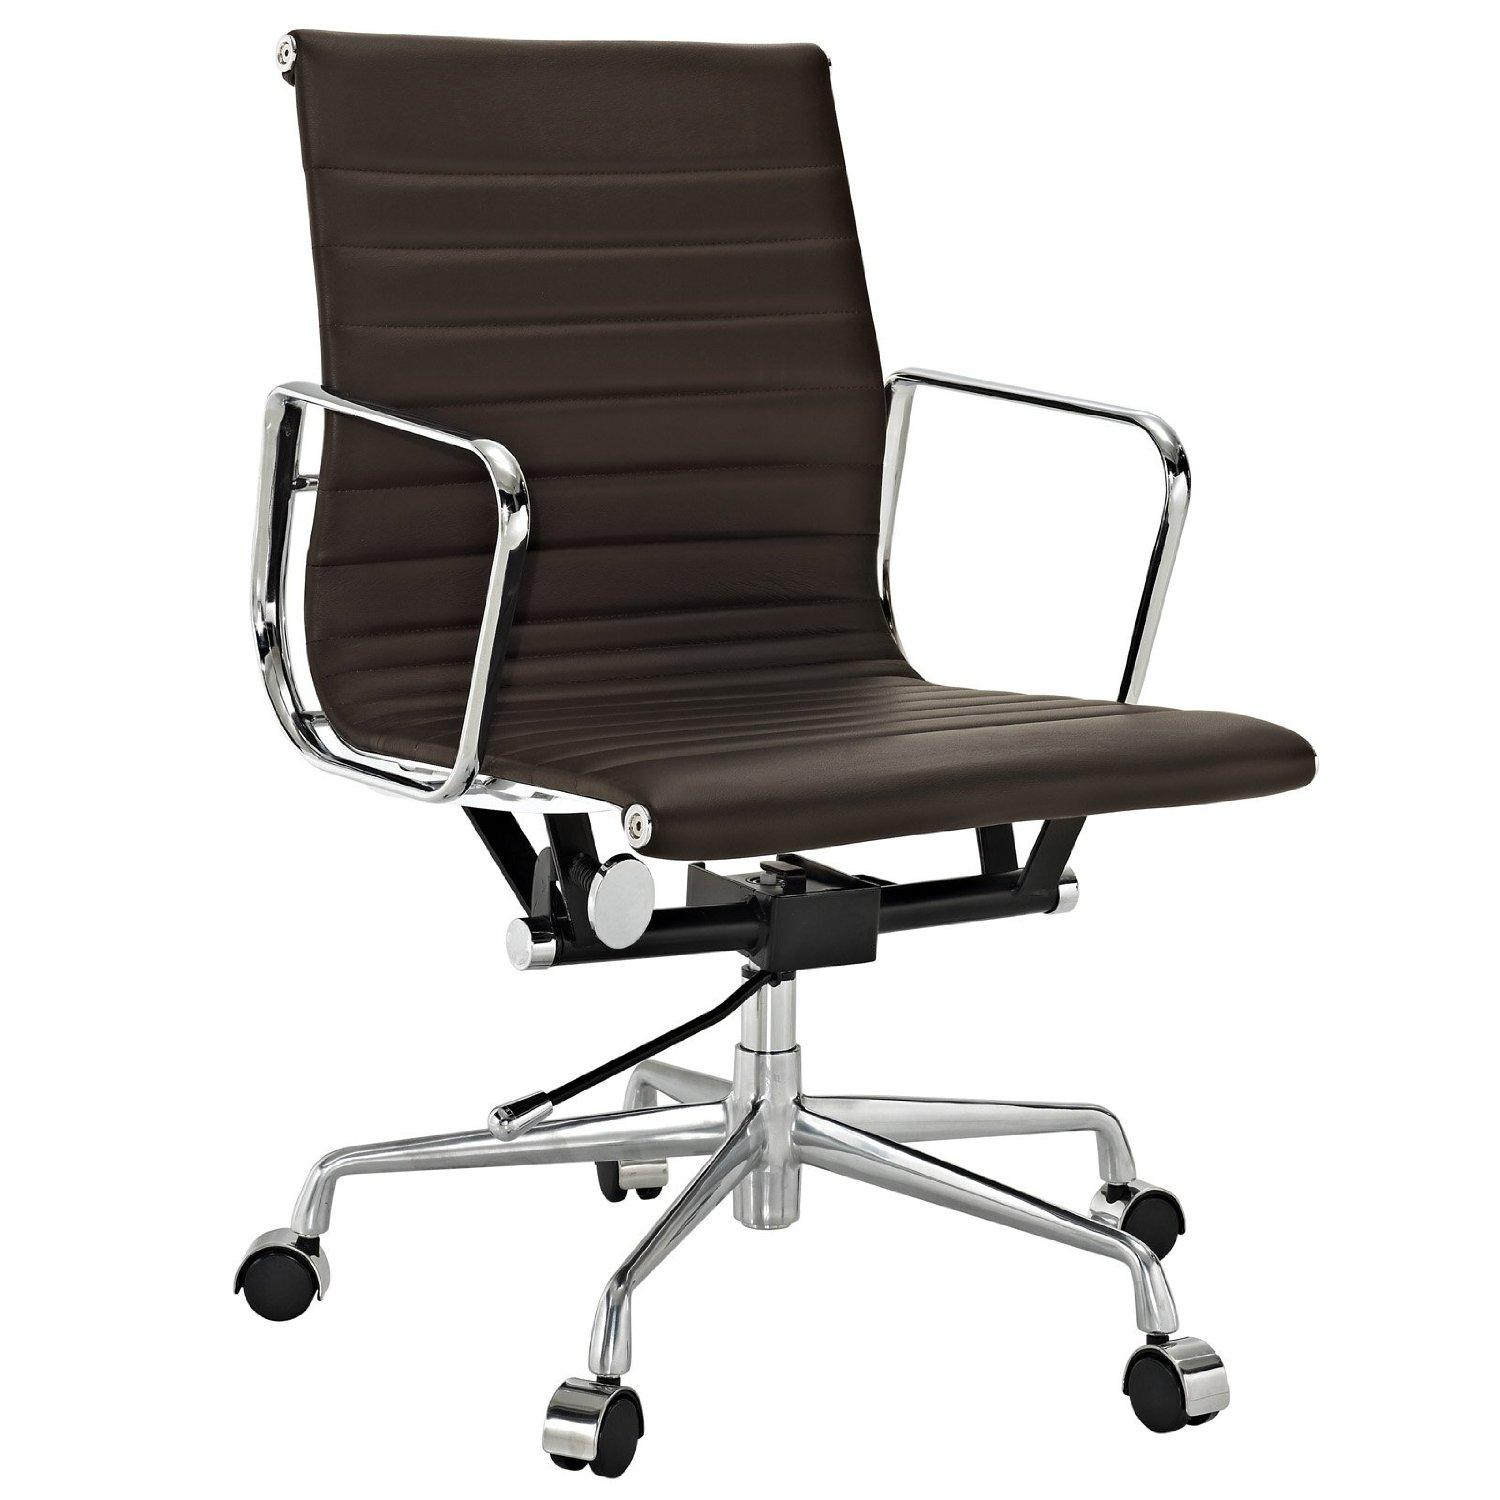 Office Leather Chairs Amazon Lexmod Ribbed Mid Back Office Chair In Brown